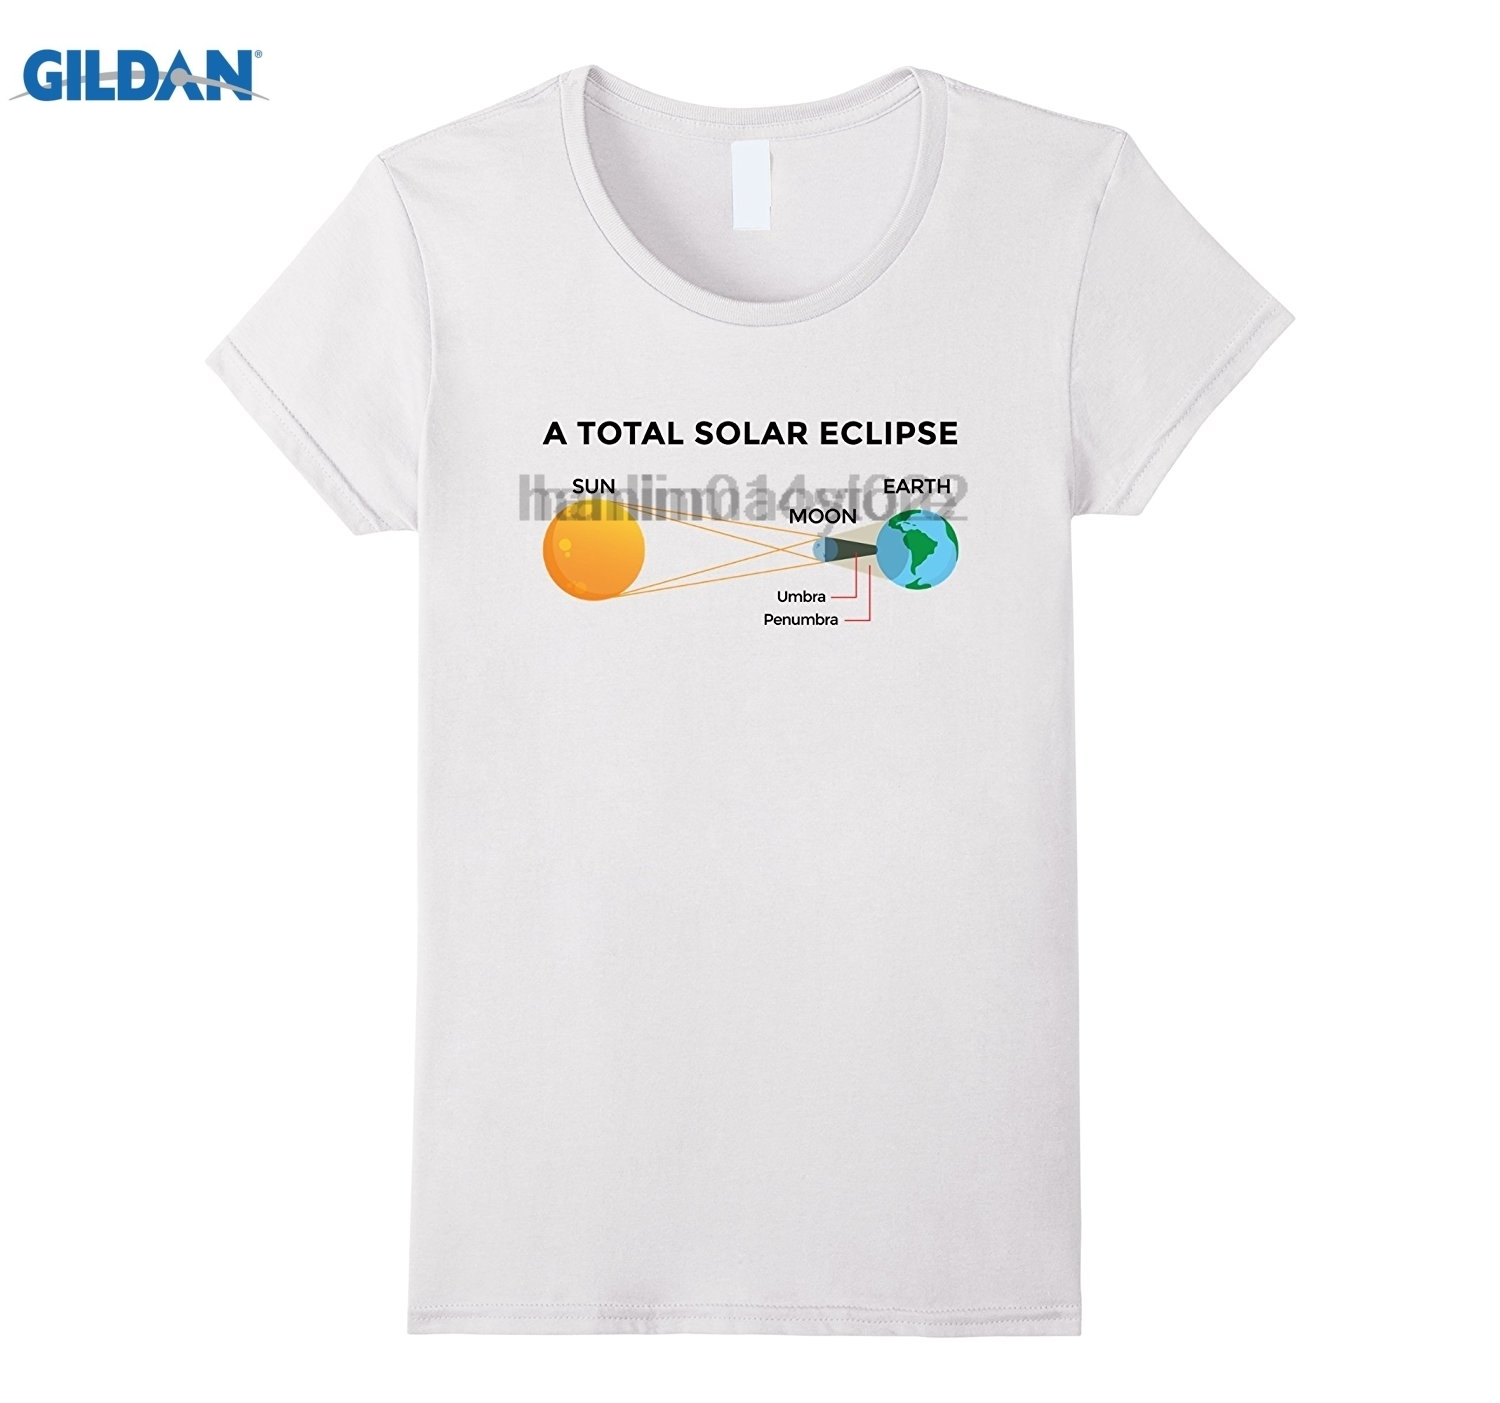 small resolution of gildan total solar eclipse diagram t shirt in t shirts from men s clothing on aliexpress com alibaba group